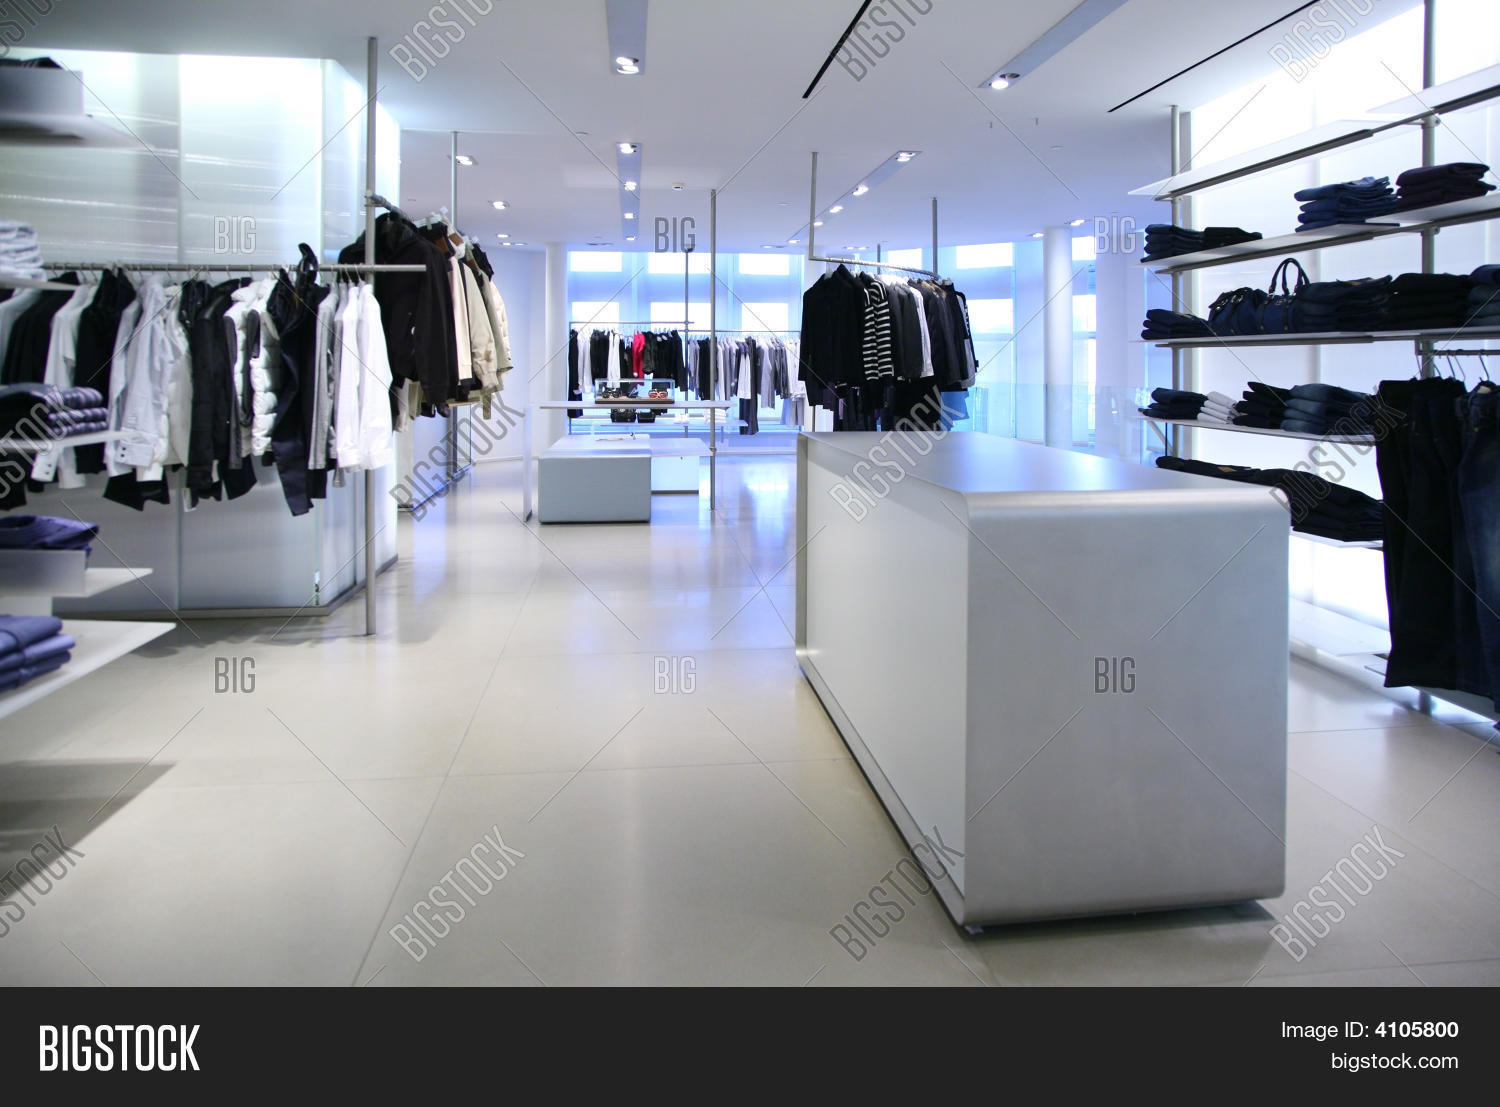 clothing in a empty modern store stock photo  stock images  bigstock - clothing in a empty modern store